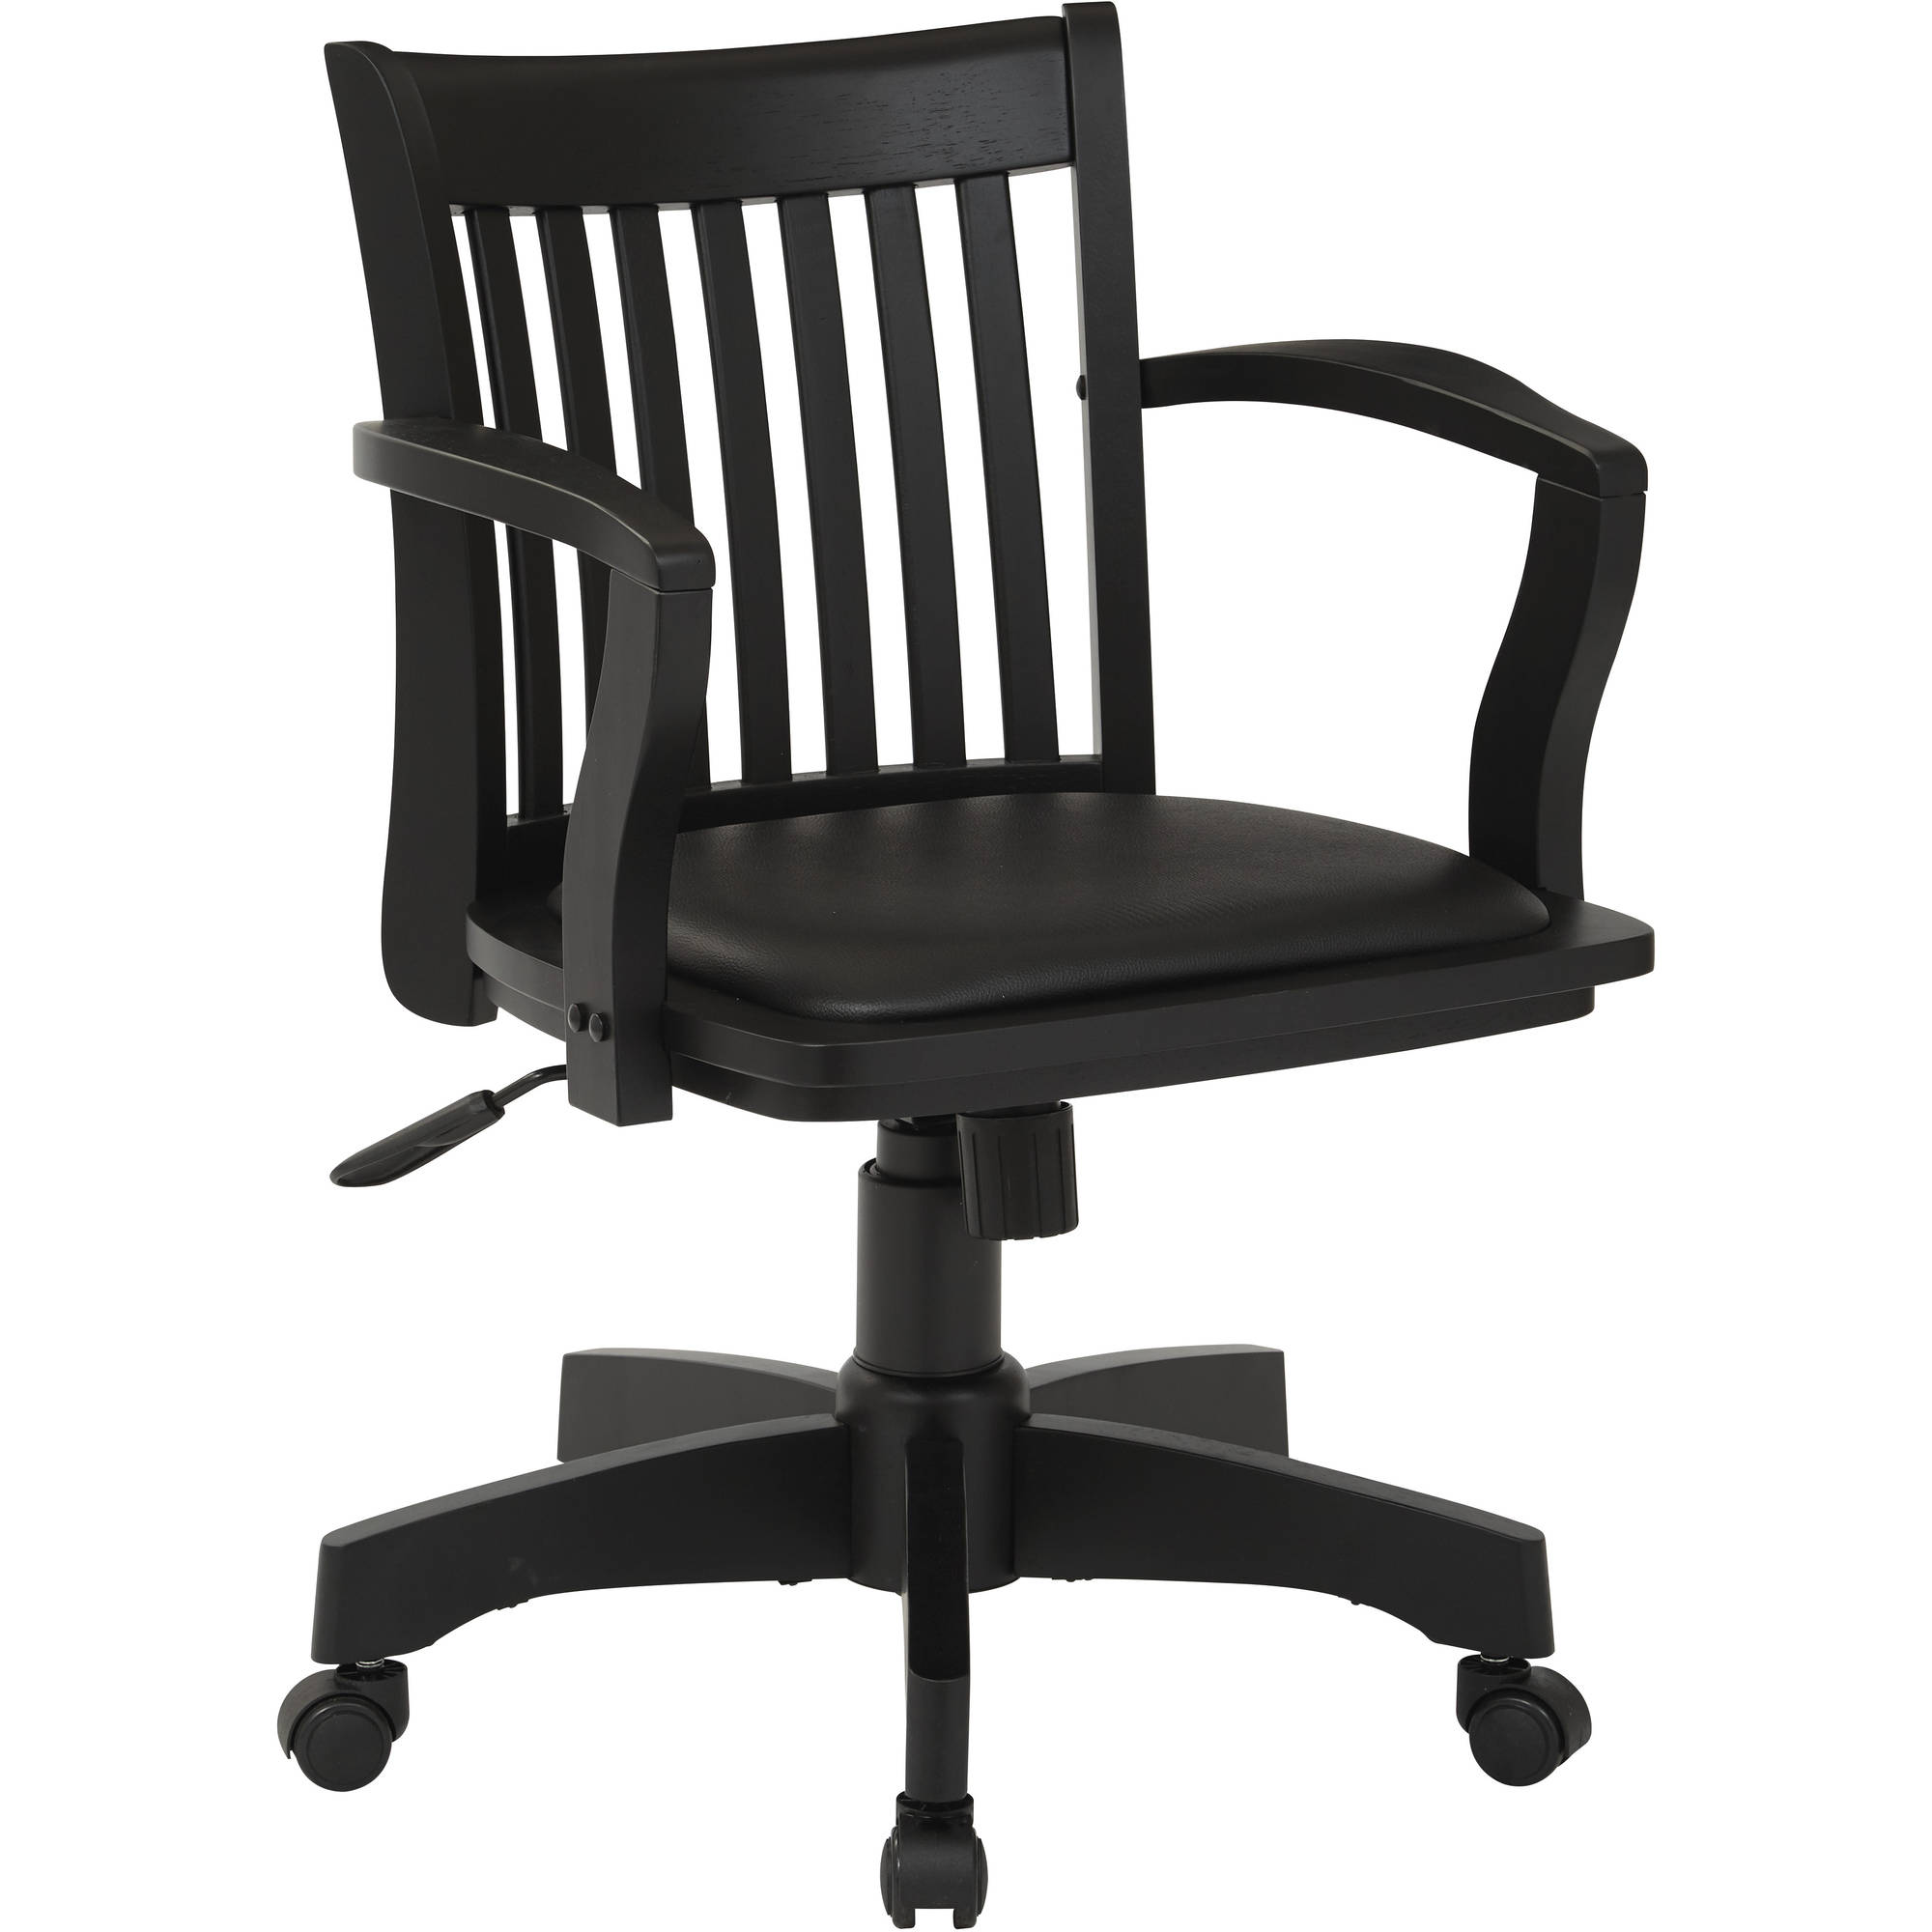 Bankers Chairs Office Star Products Deluxe Wood Banker 39s Chair With Arms